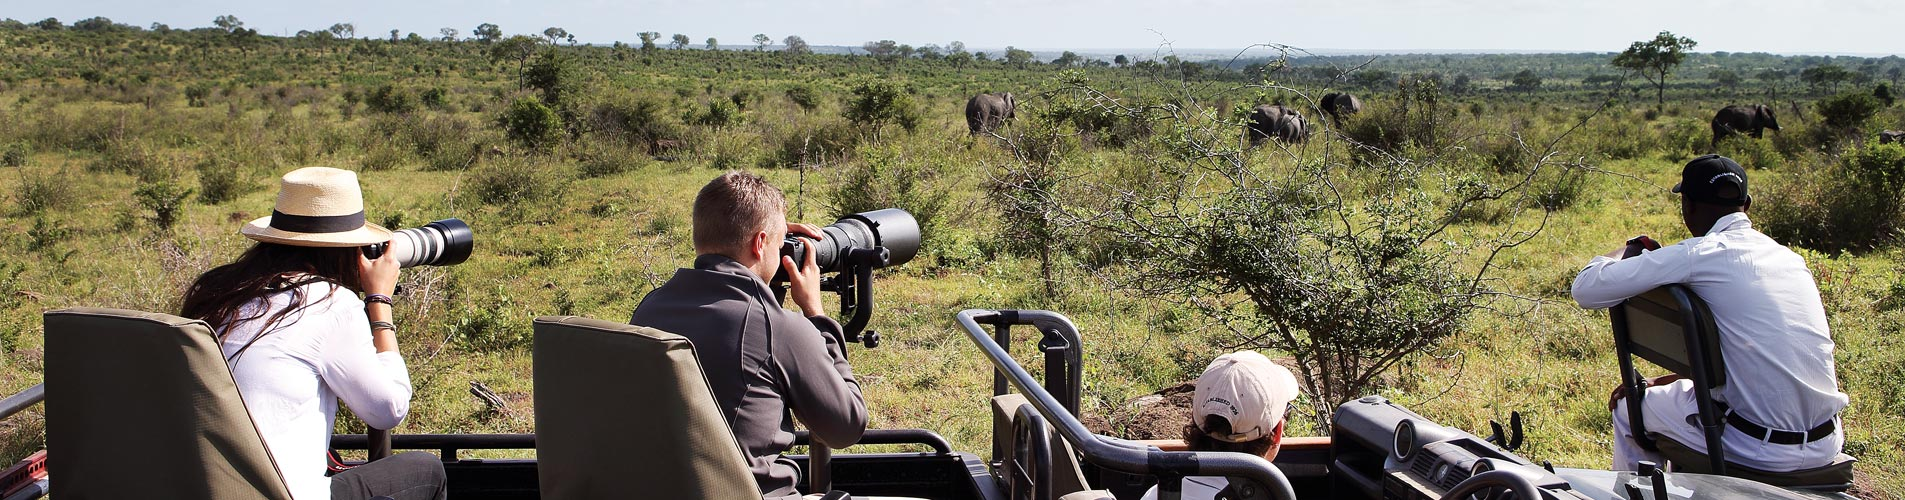 Photographic Safari Workshops at Londolozi